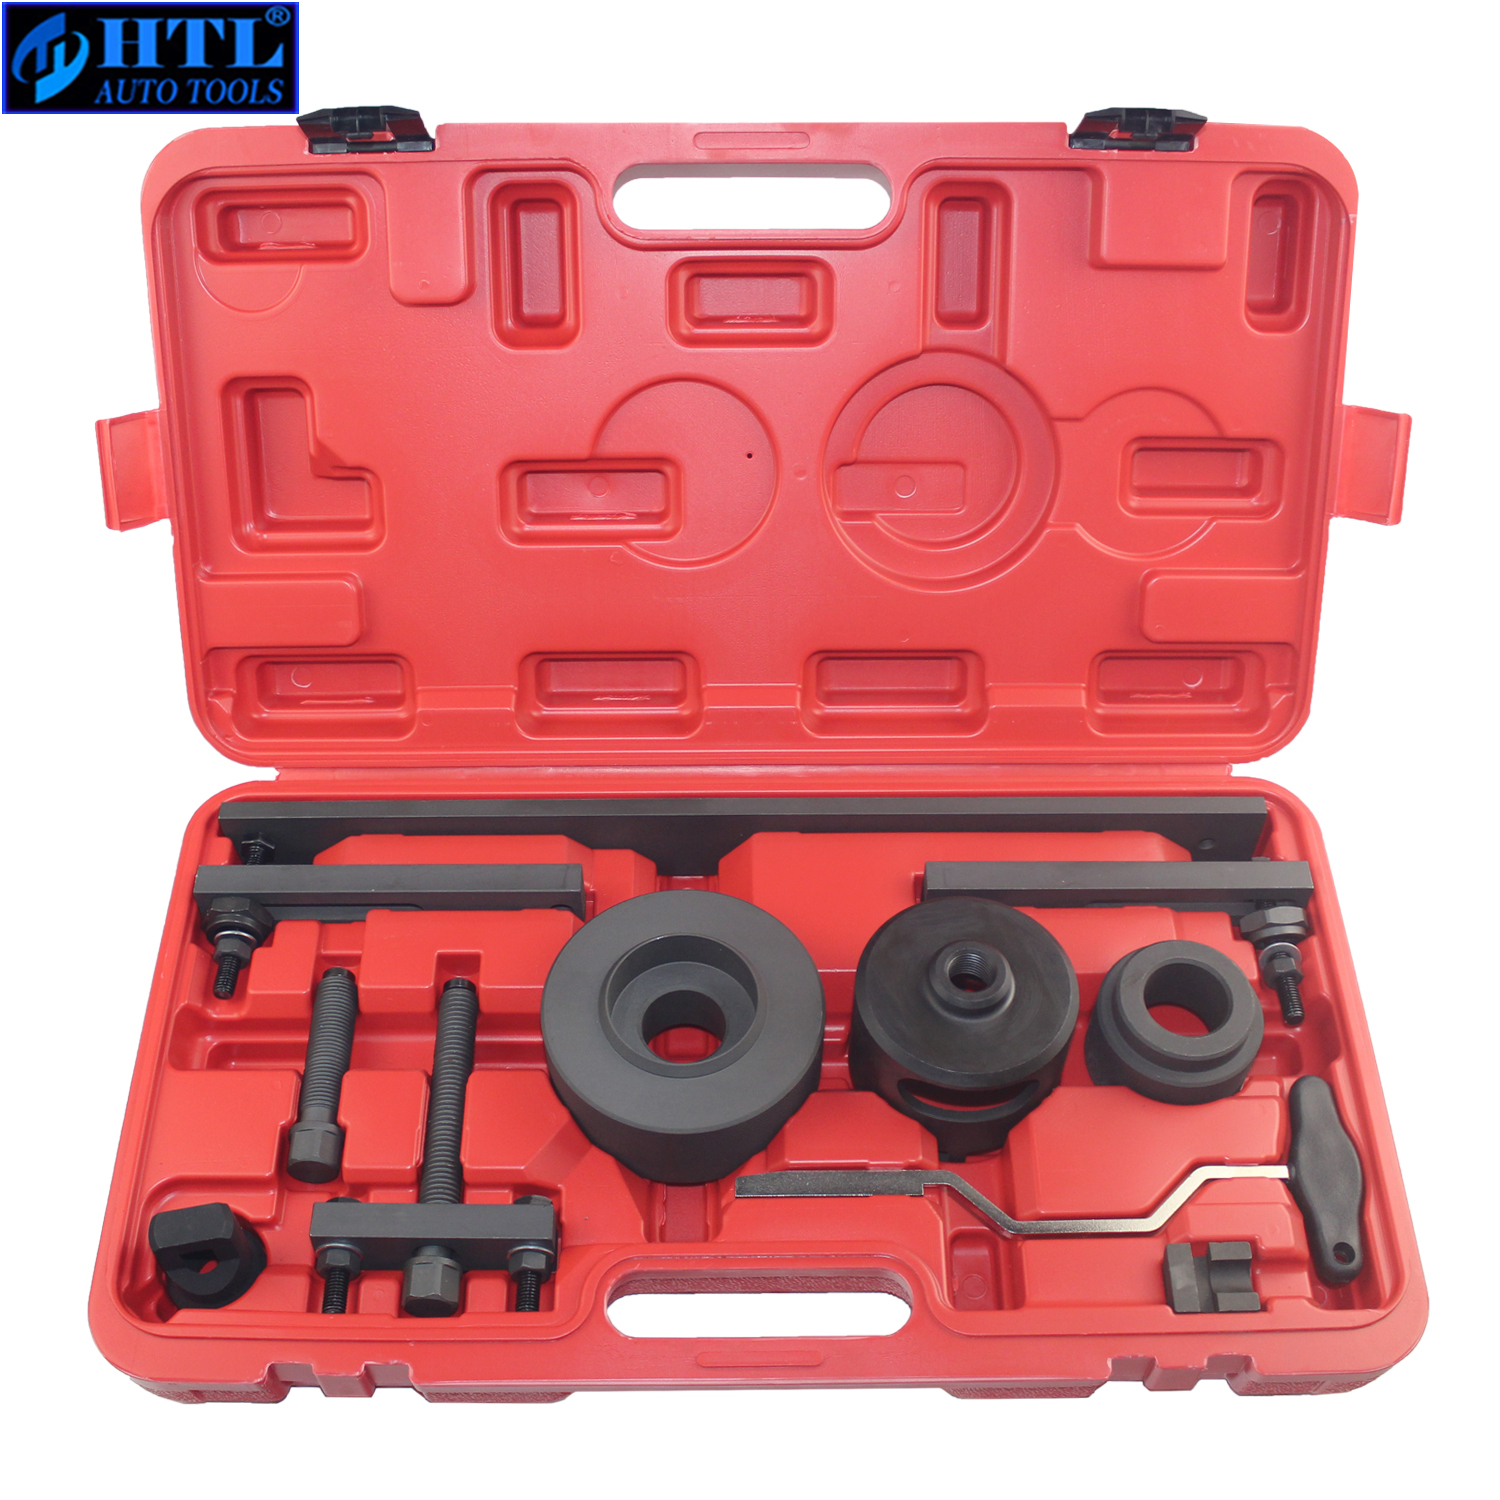 Double Clutch Transmission Tool For VAG VW AUDI 7 Speed DSG Clutch Installer Remover T10373 T10376